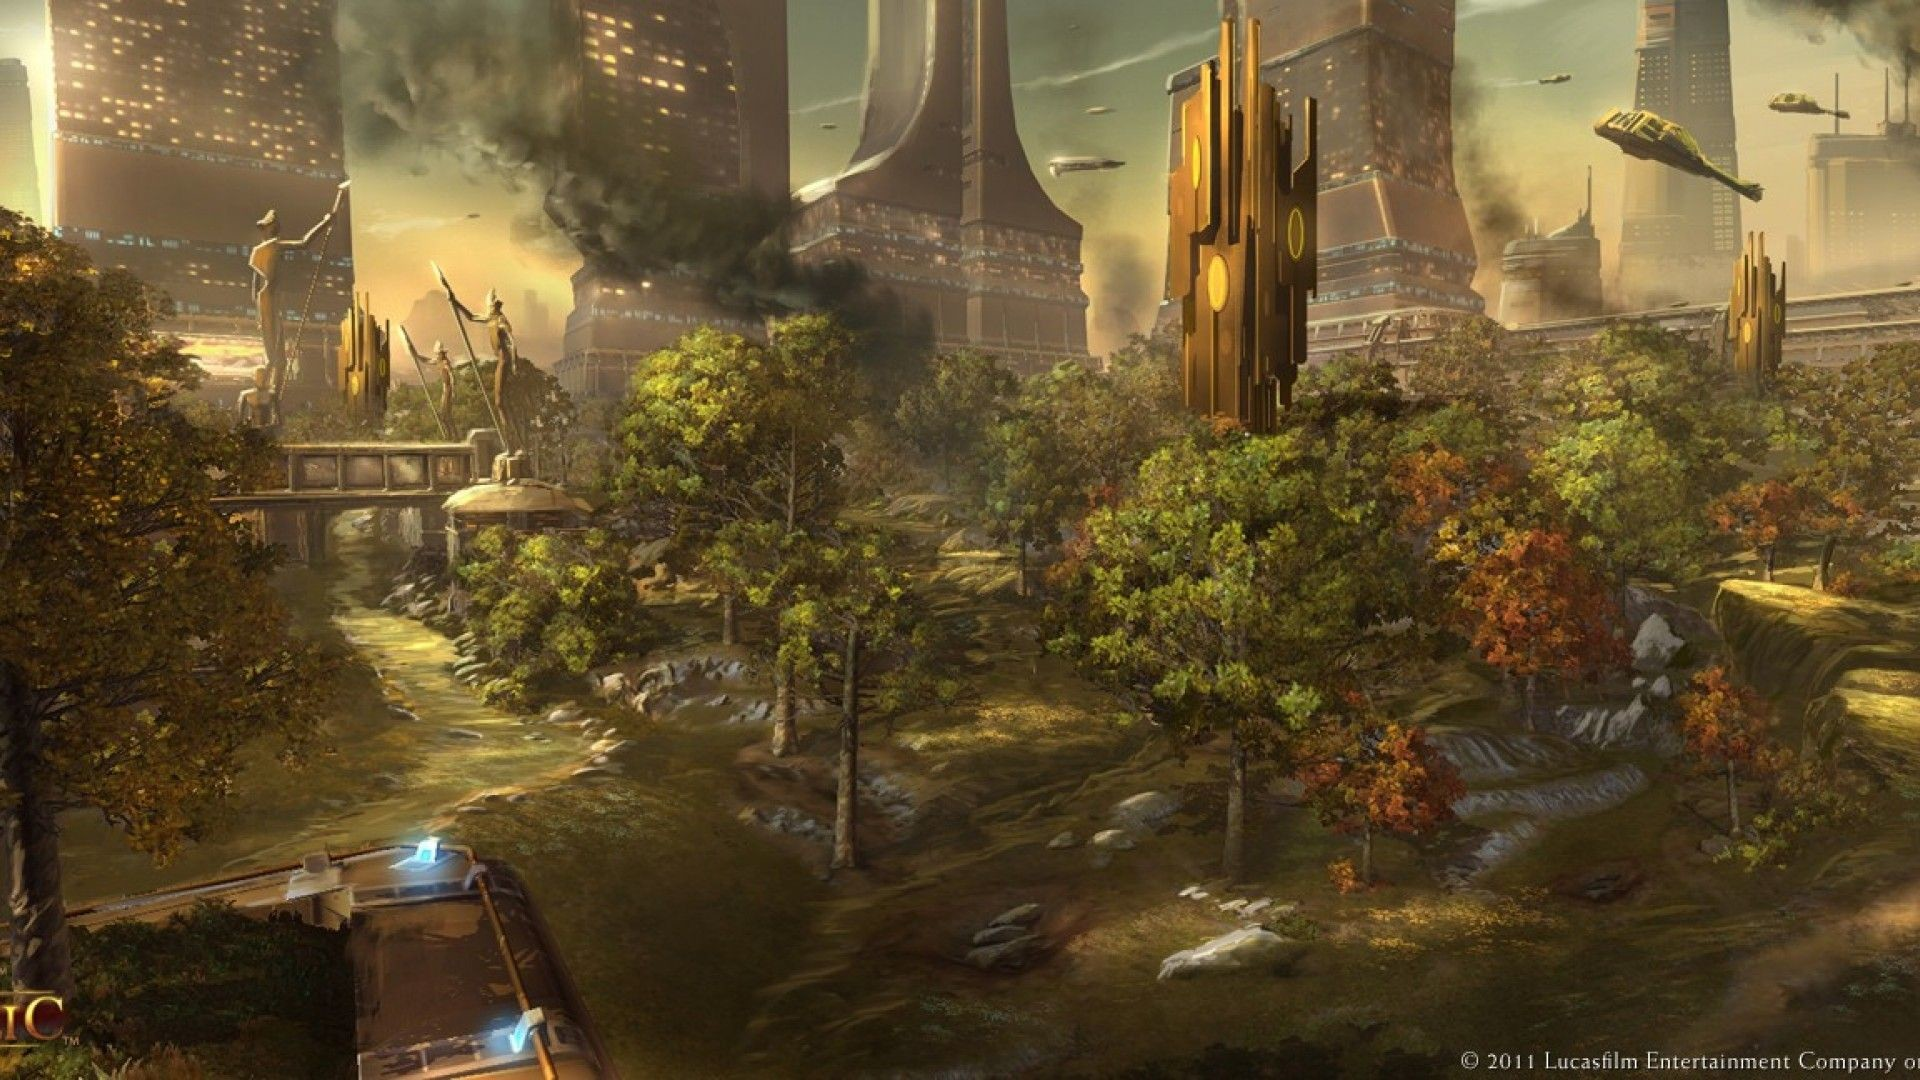 Star Wars Concept Art, republic, old, HD Wallpaper and .